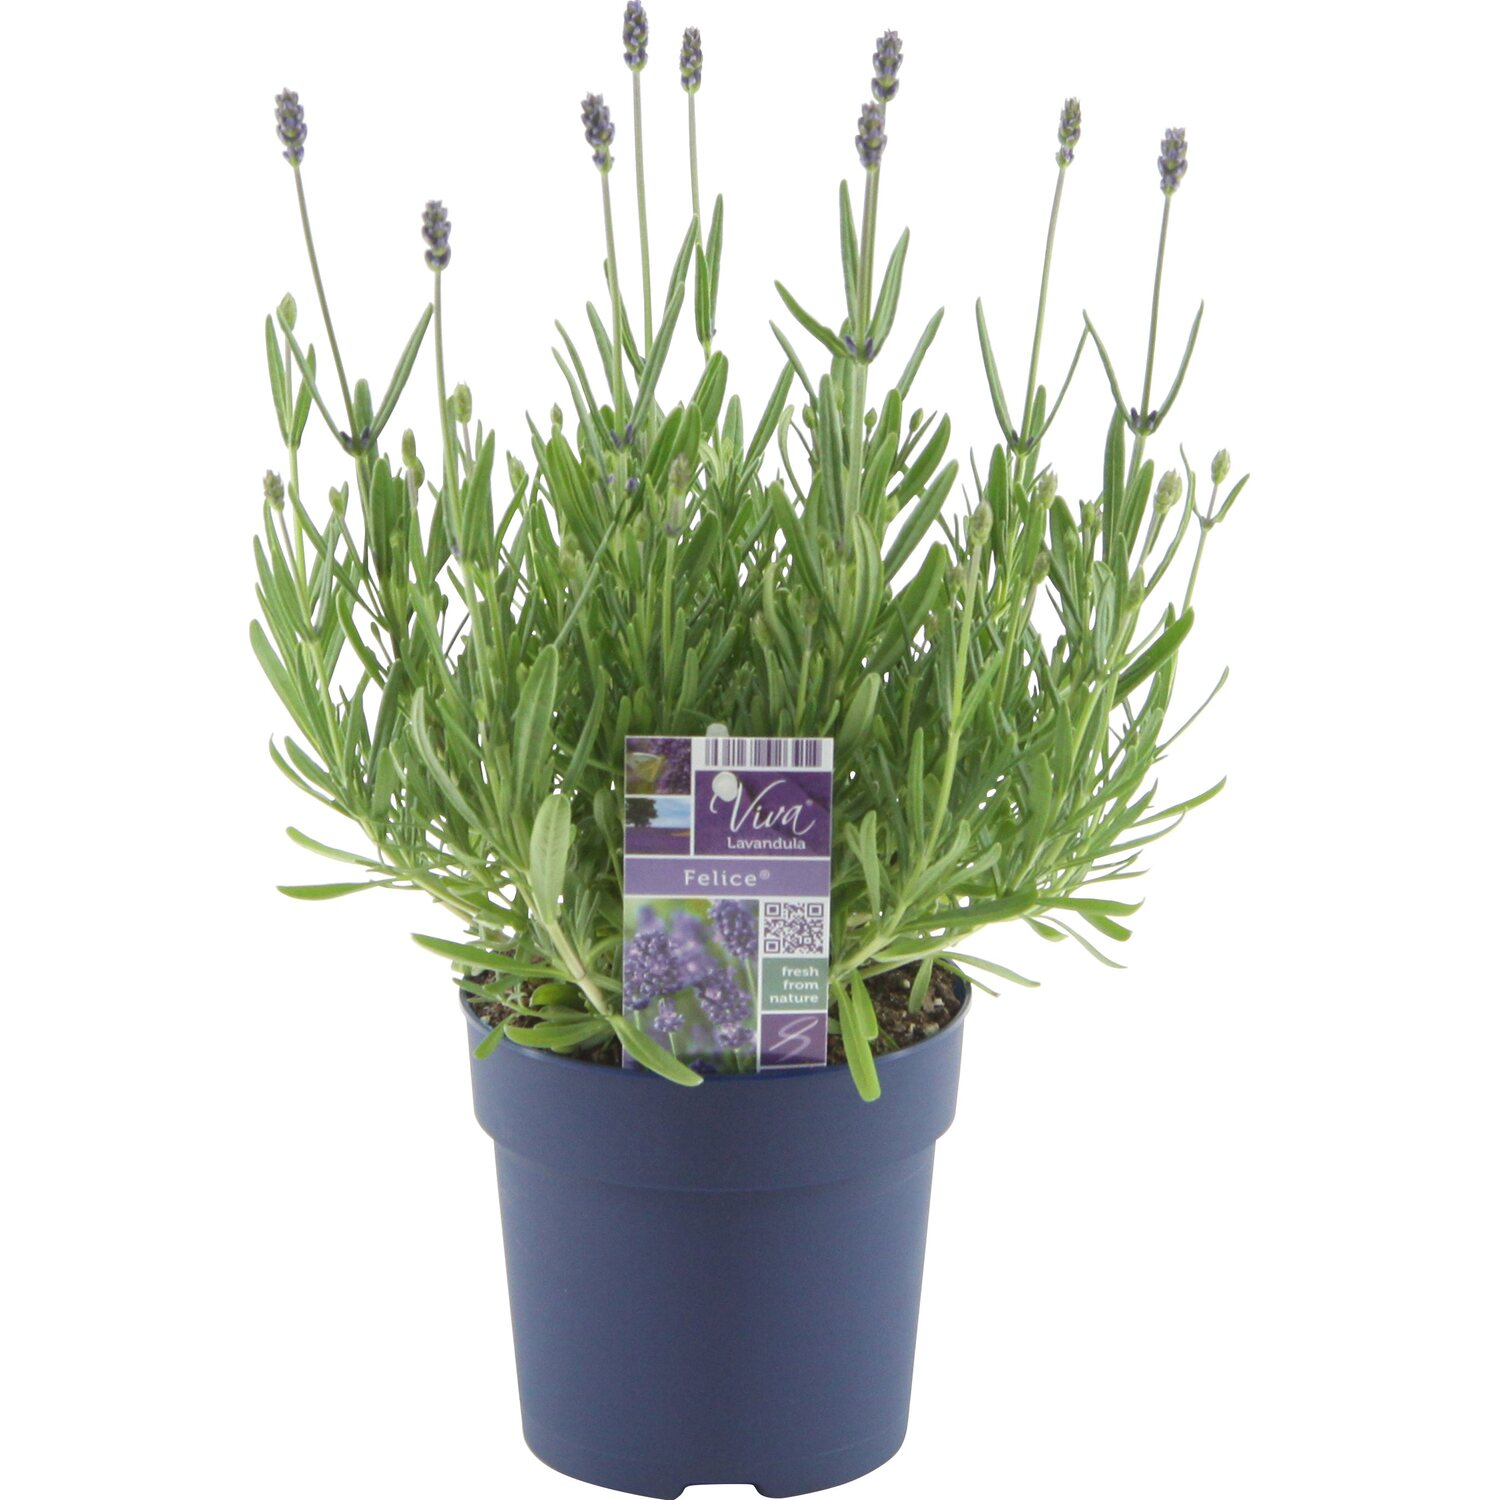 obi lavendel felice topf ca 12 cm lavandula. Black Bedroom Furniture Sets. Home Design Ideas